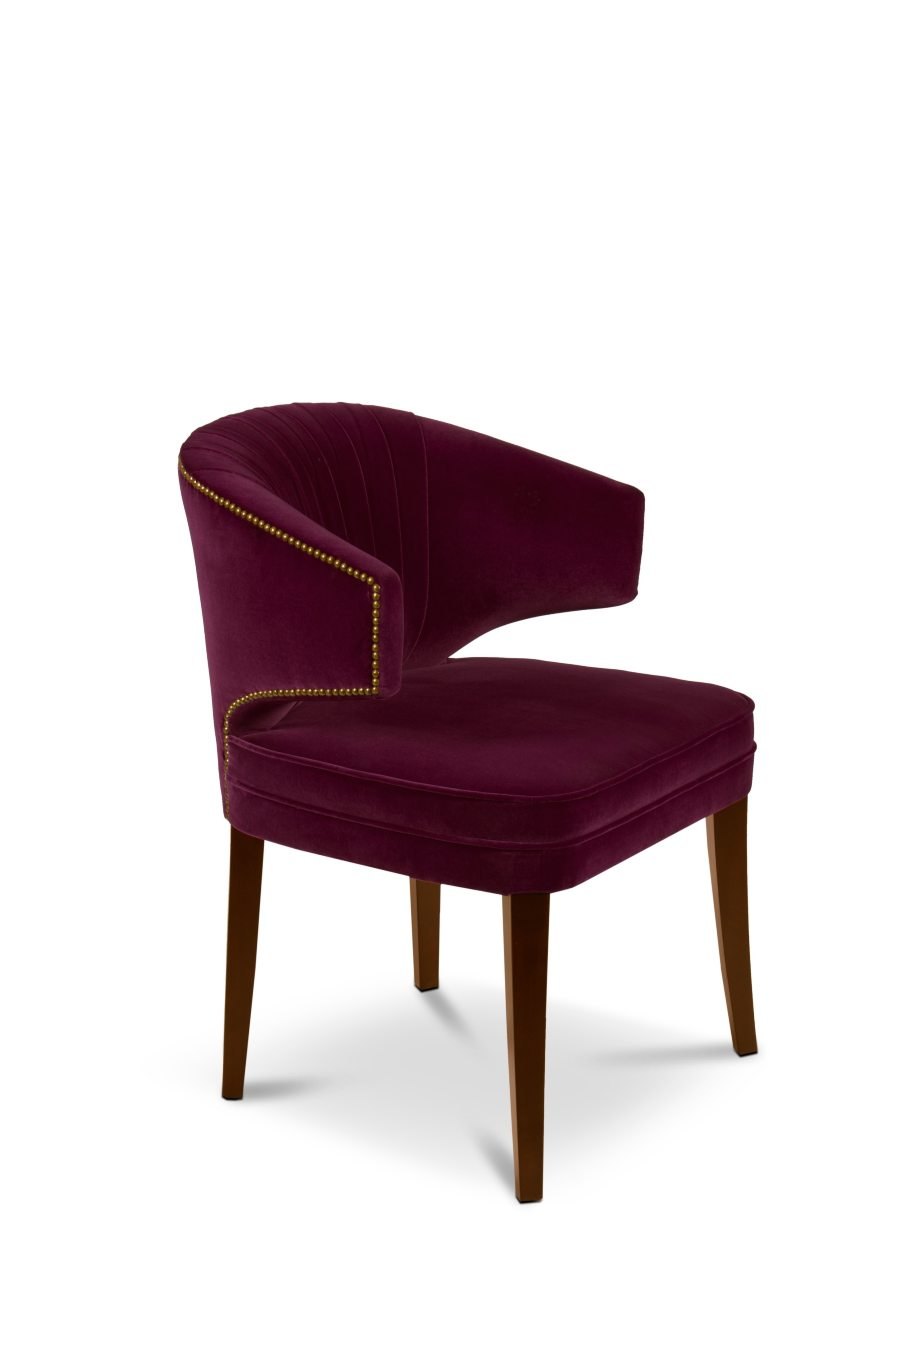 Jimmie Martin - Furniture Design Excellence